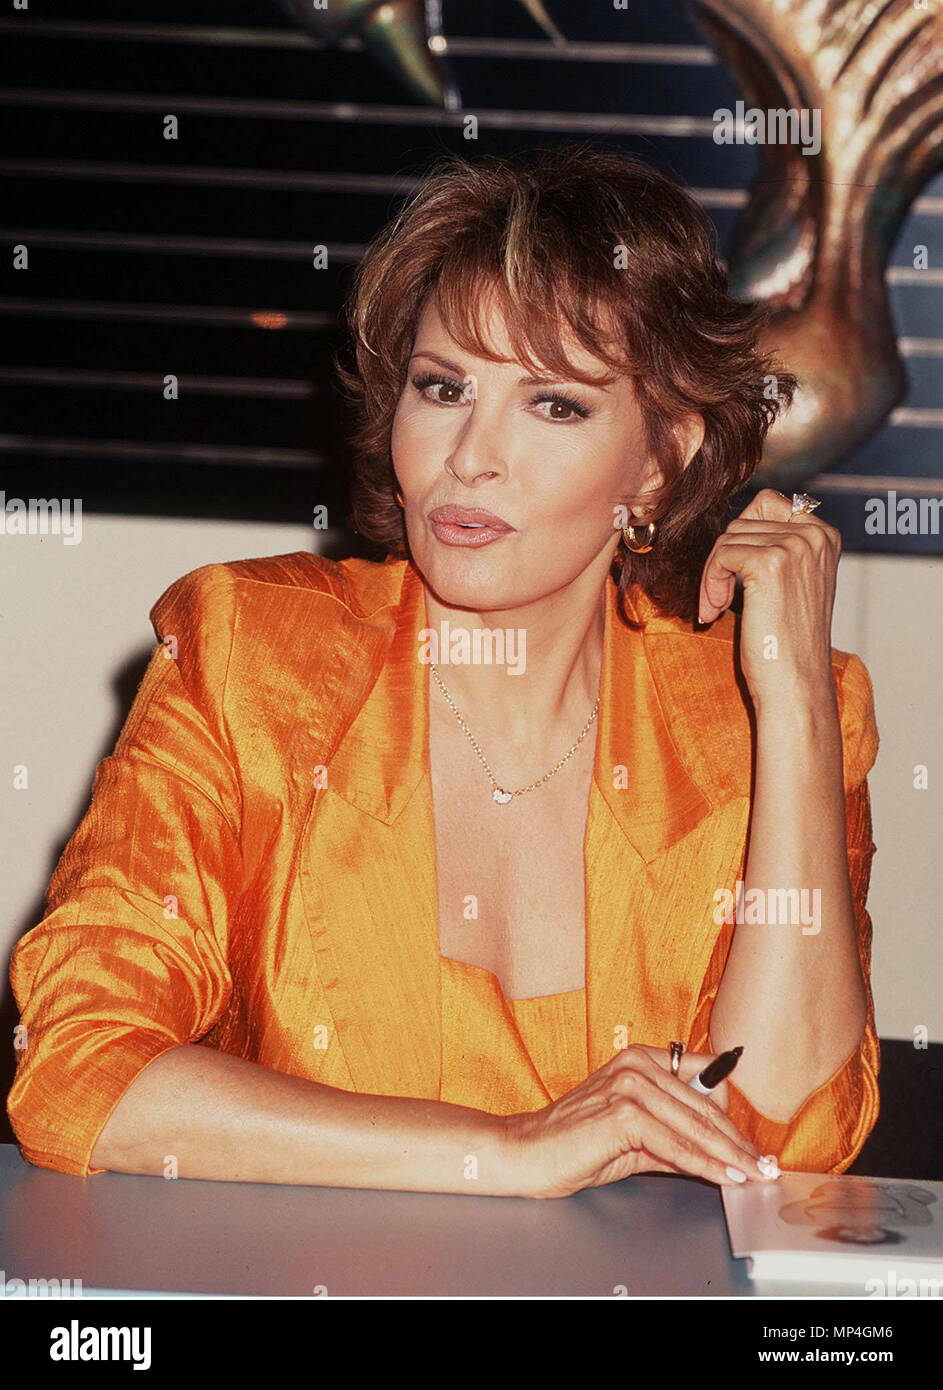 Welch Raquel Welch Raquel 5 Event In Hollywood Life California Red Carpet Event Vertical Usa Film Industry Celebrities Photography Bestof Arts Culture And Entertainment Topix Celebrities Fashion Best Of Hollywood